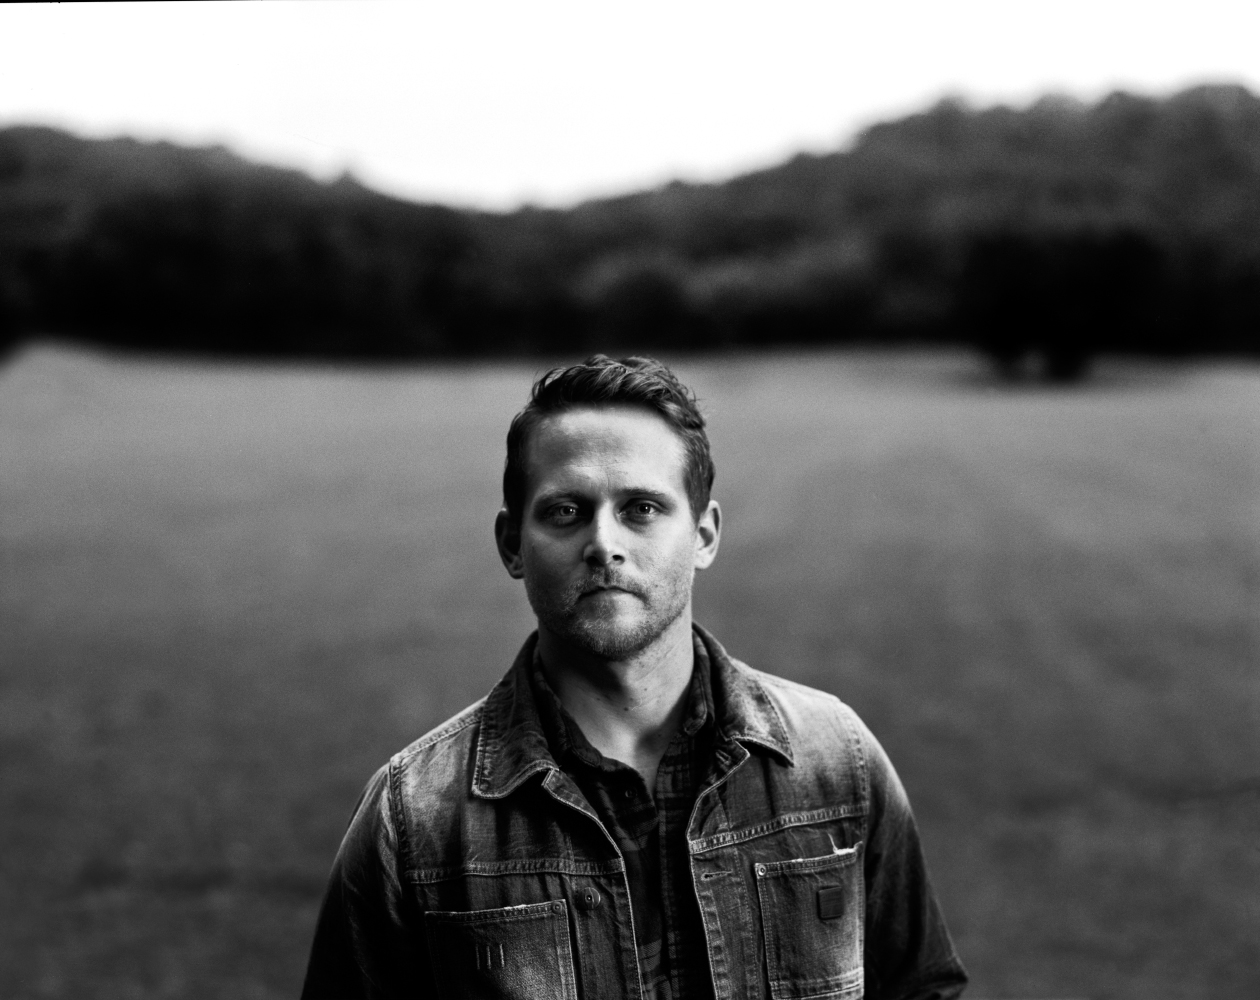 LISTEN: Tim McNary, 'The Other Man'